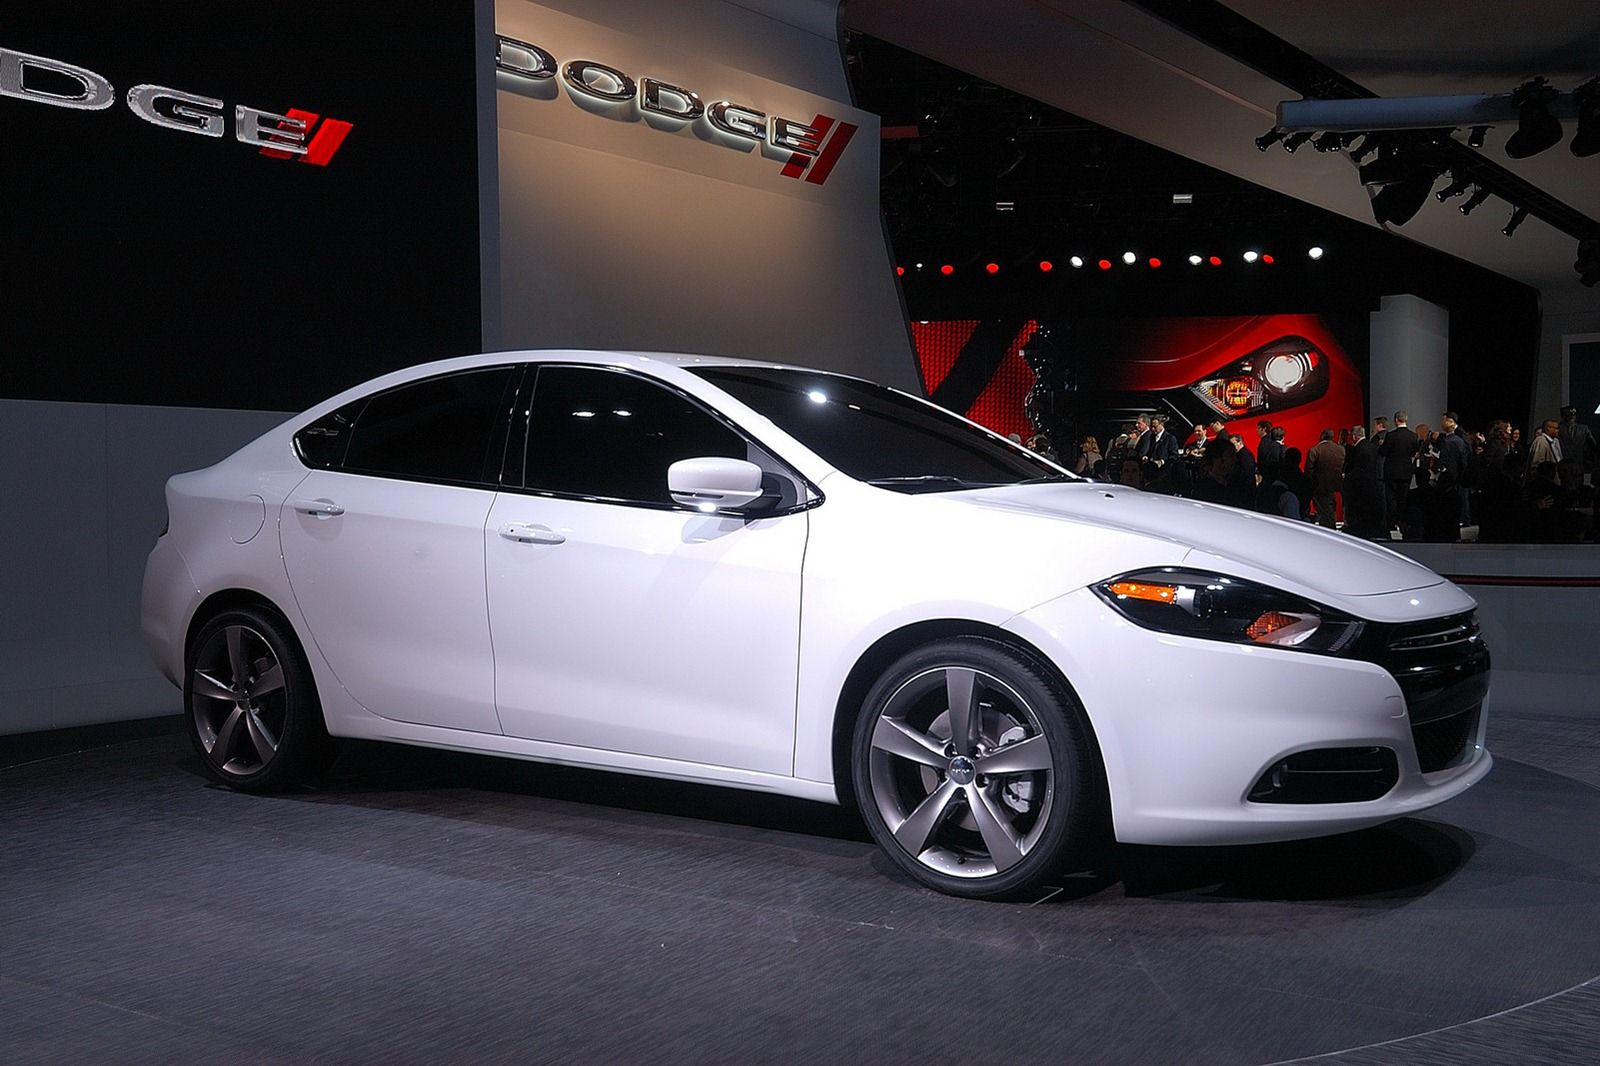 The New Dodge Dart Will Come In A Array Of New Colors And Options